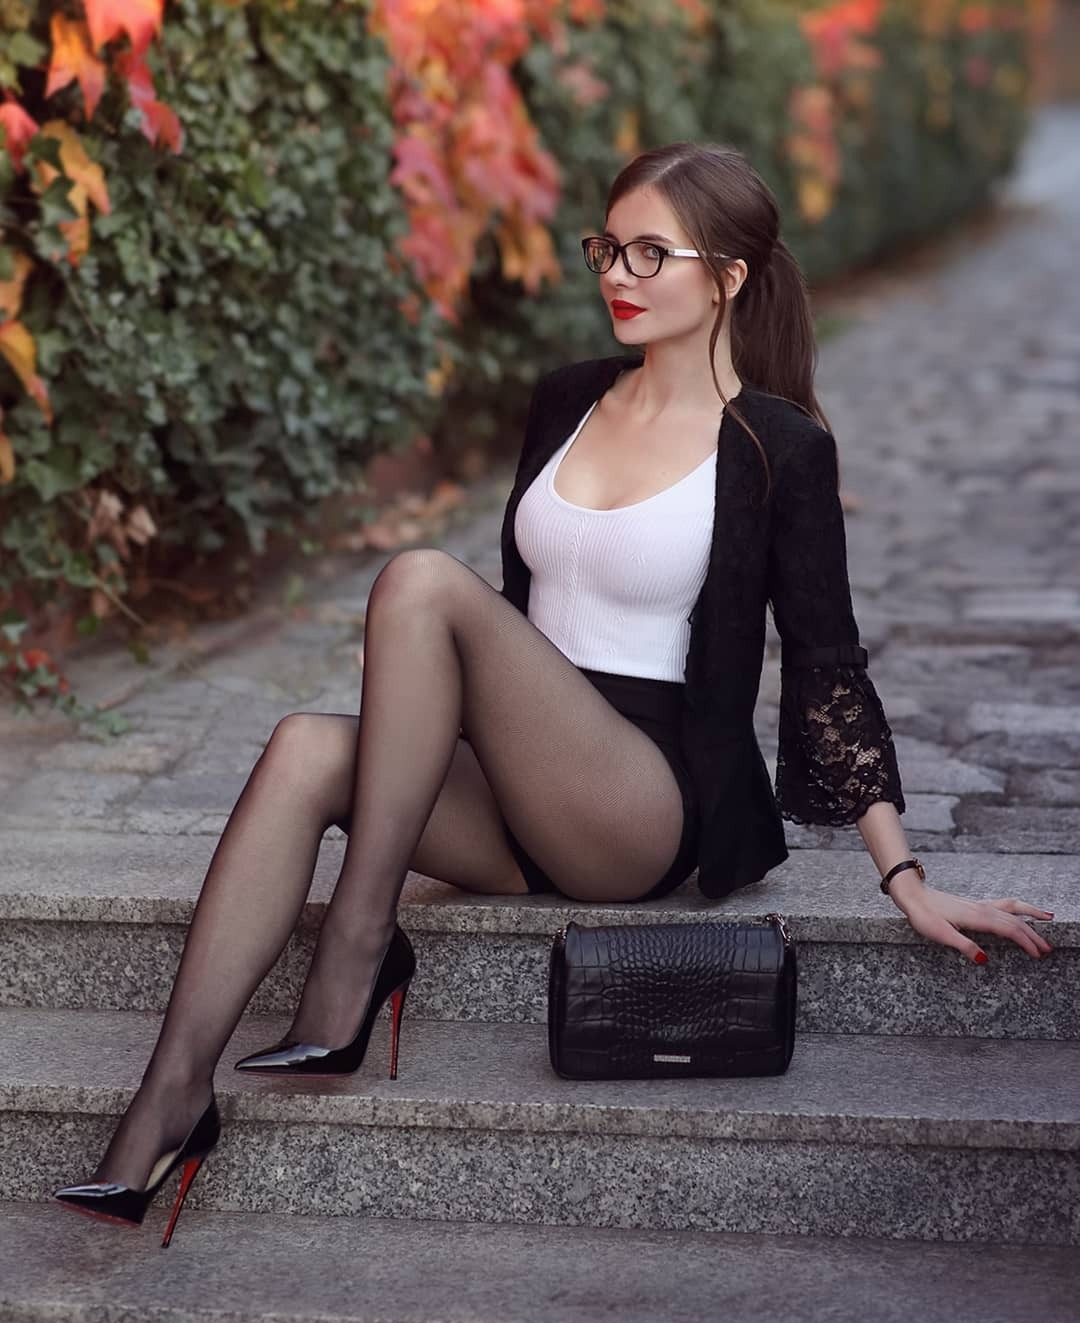 Hot Girls Like High Heels (48 Photos)